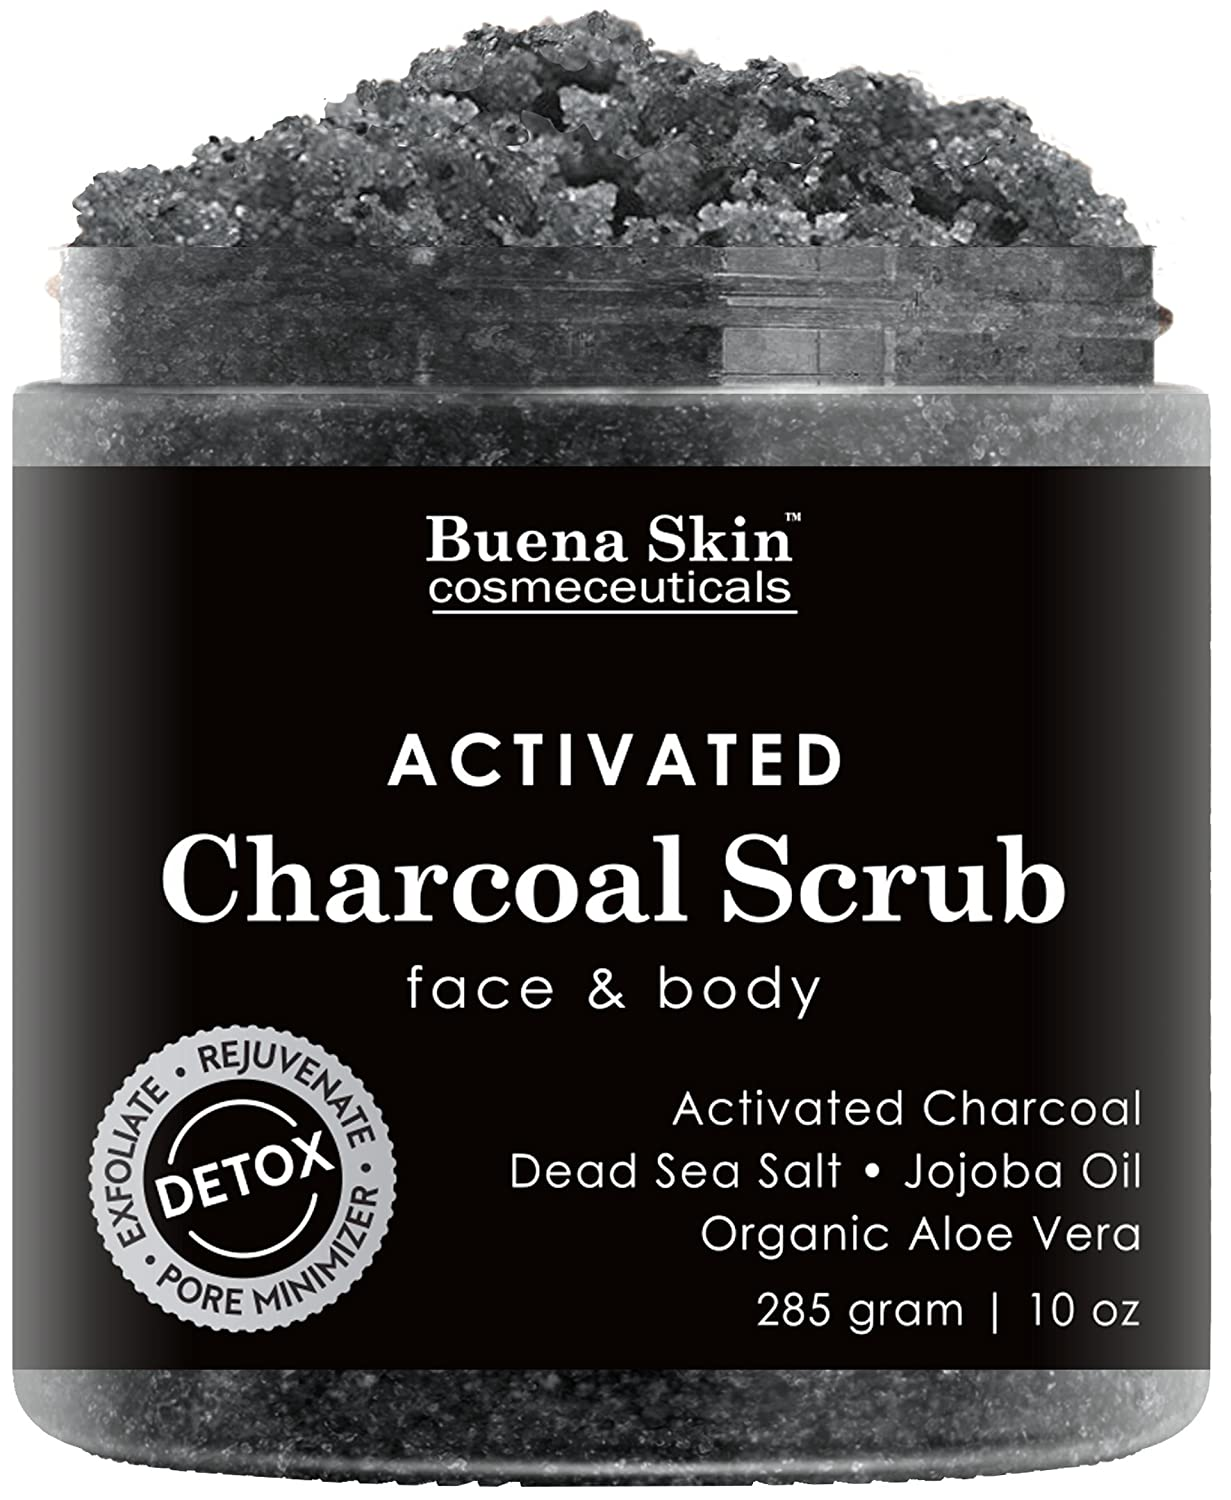 Activated Charcoal Scrub by Buena Skin | Deep Cleanser, Pore Minimizer & Reduces Wrinkles, Blackheads, Acne Scars, Anti Cellulite Treatment - Great for Face & Body 10 oz.